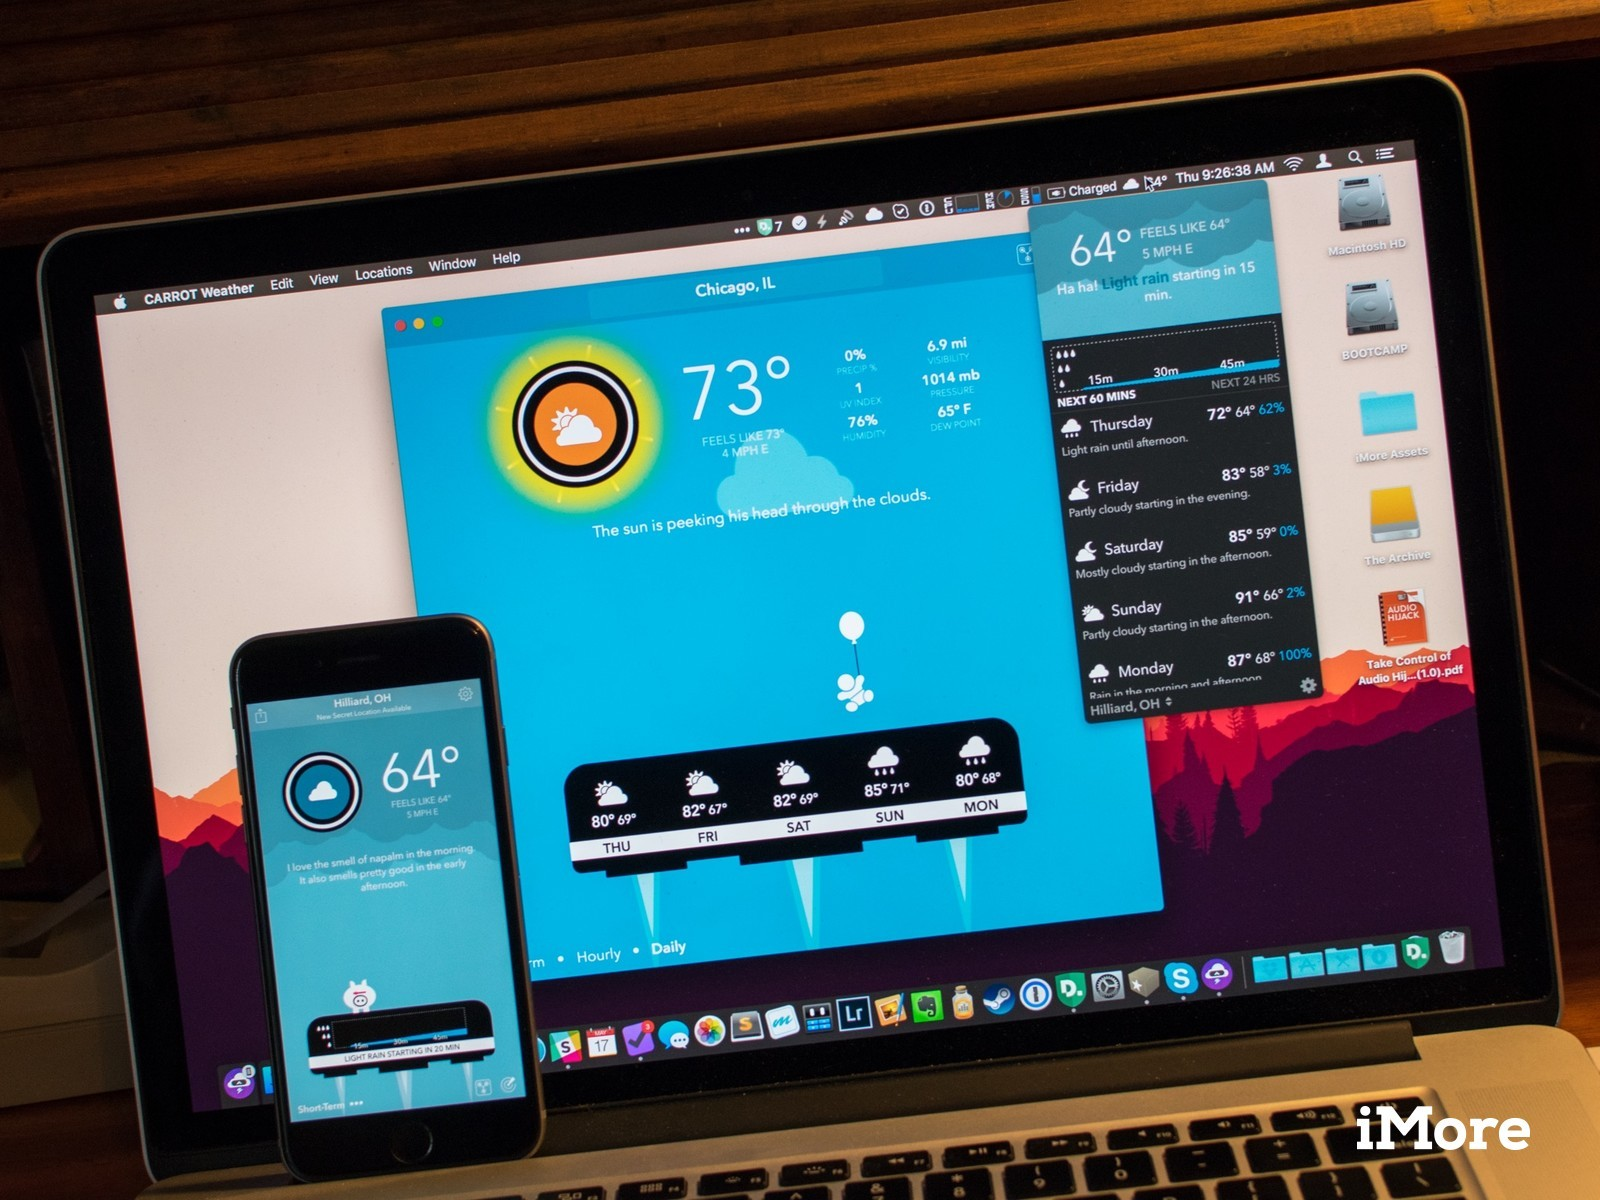 CARROT Weather hits the Mac alongside major iPhone and iPad app update